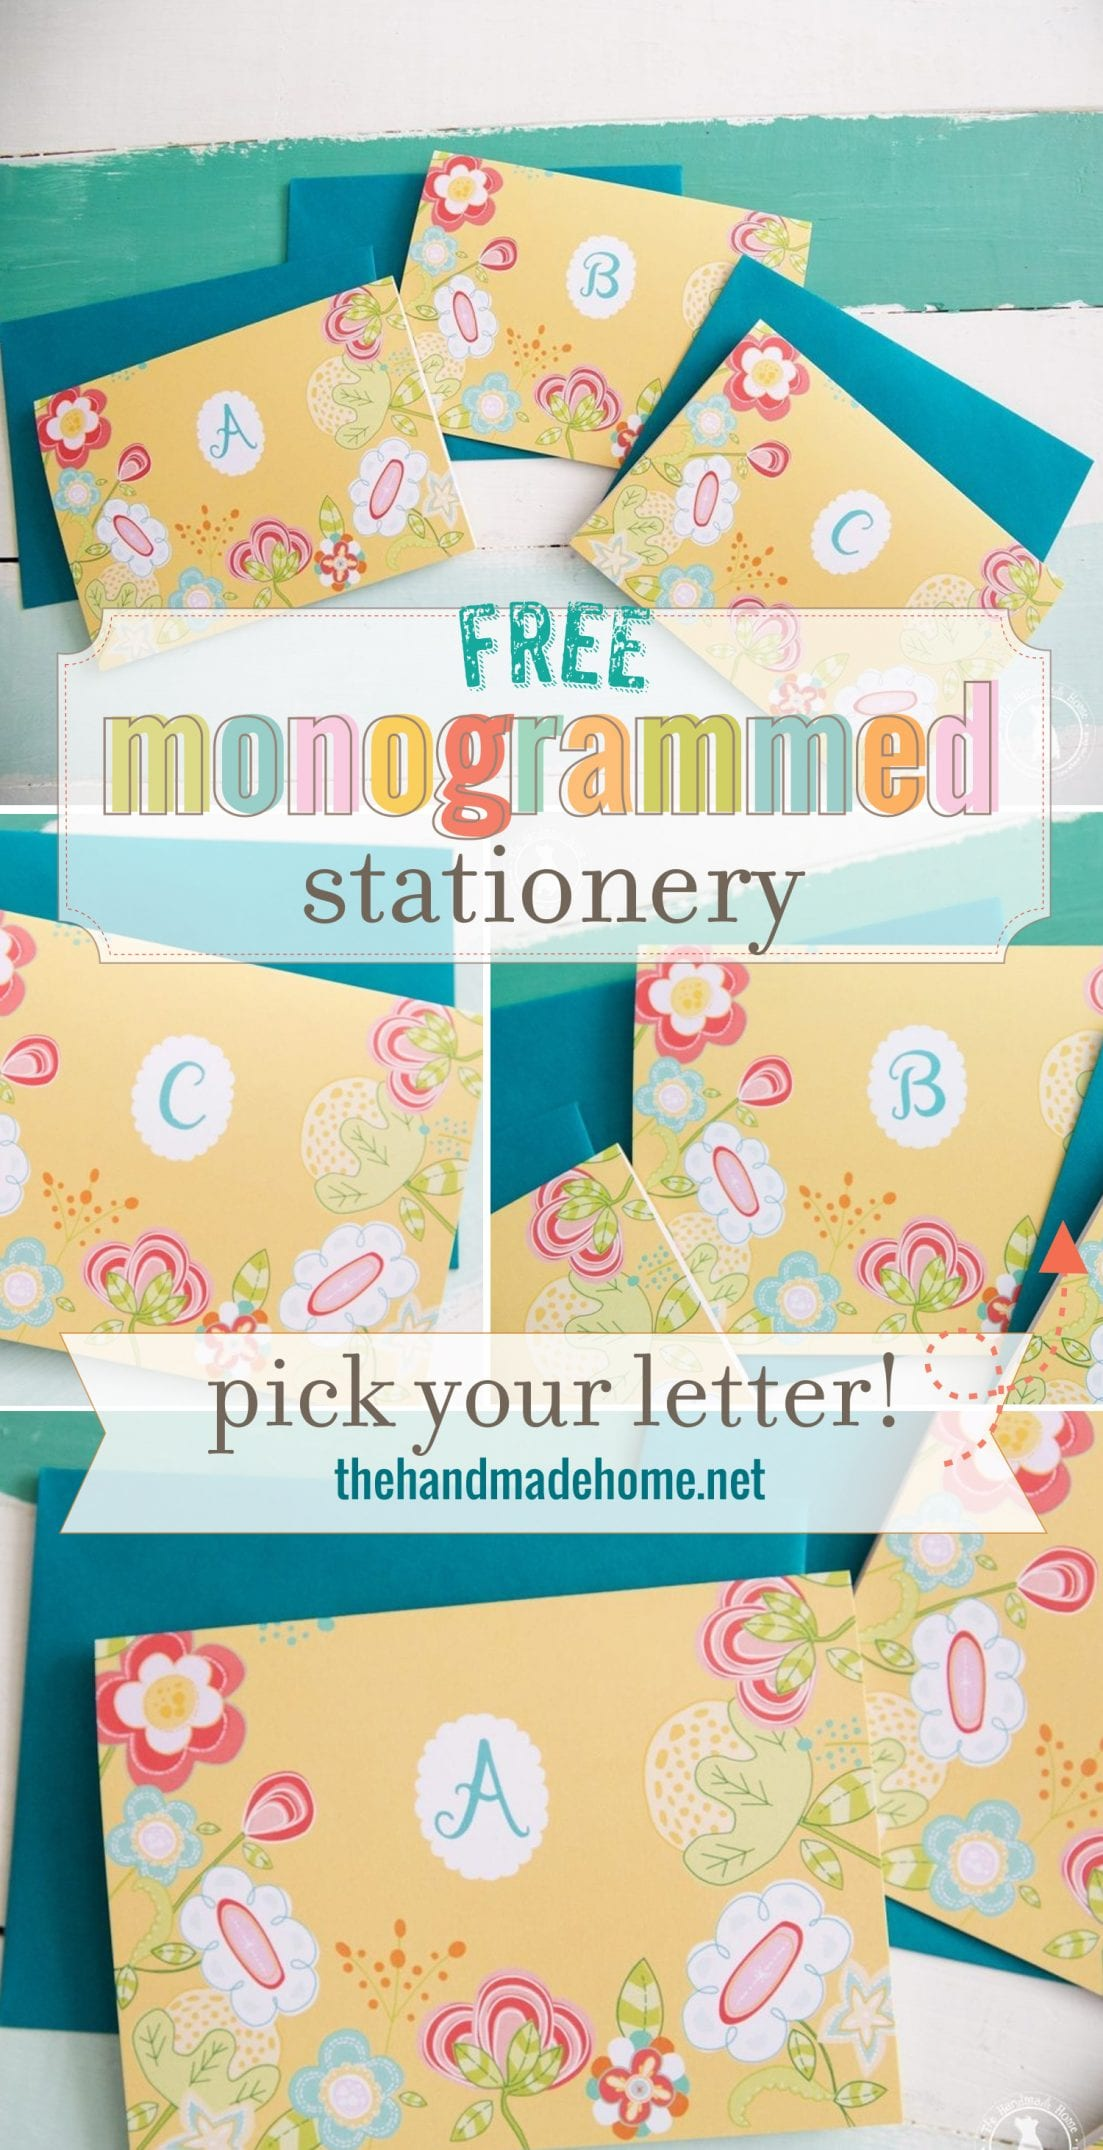 graphic about Printable Stationeries named Totally free Monogram Stationery - Printable Stationery For Any